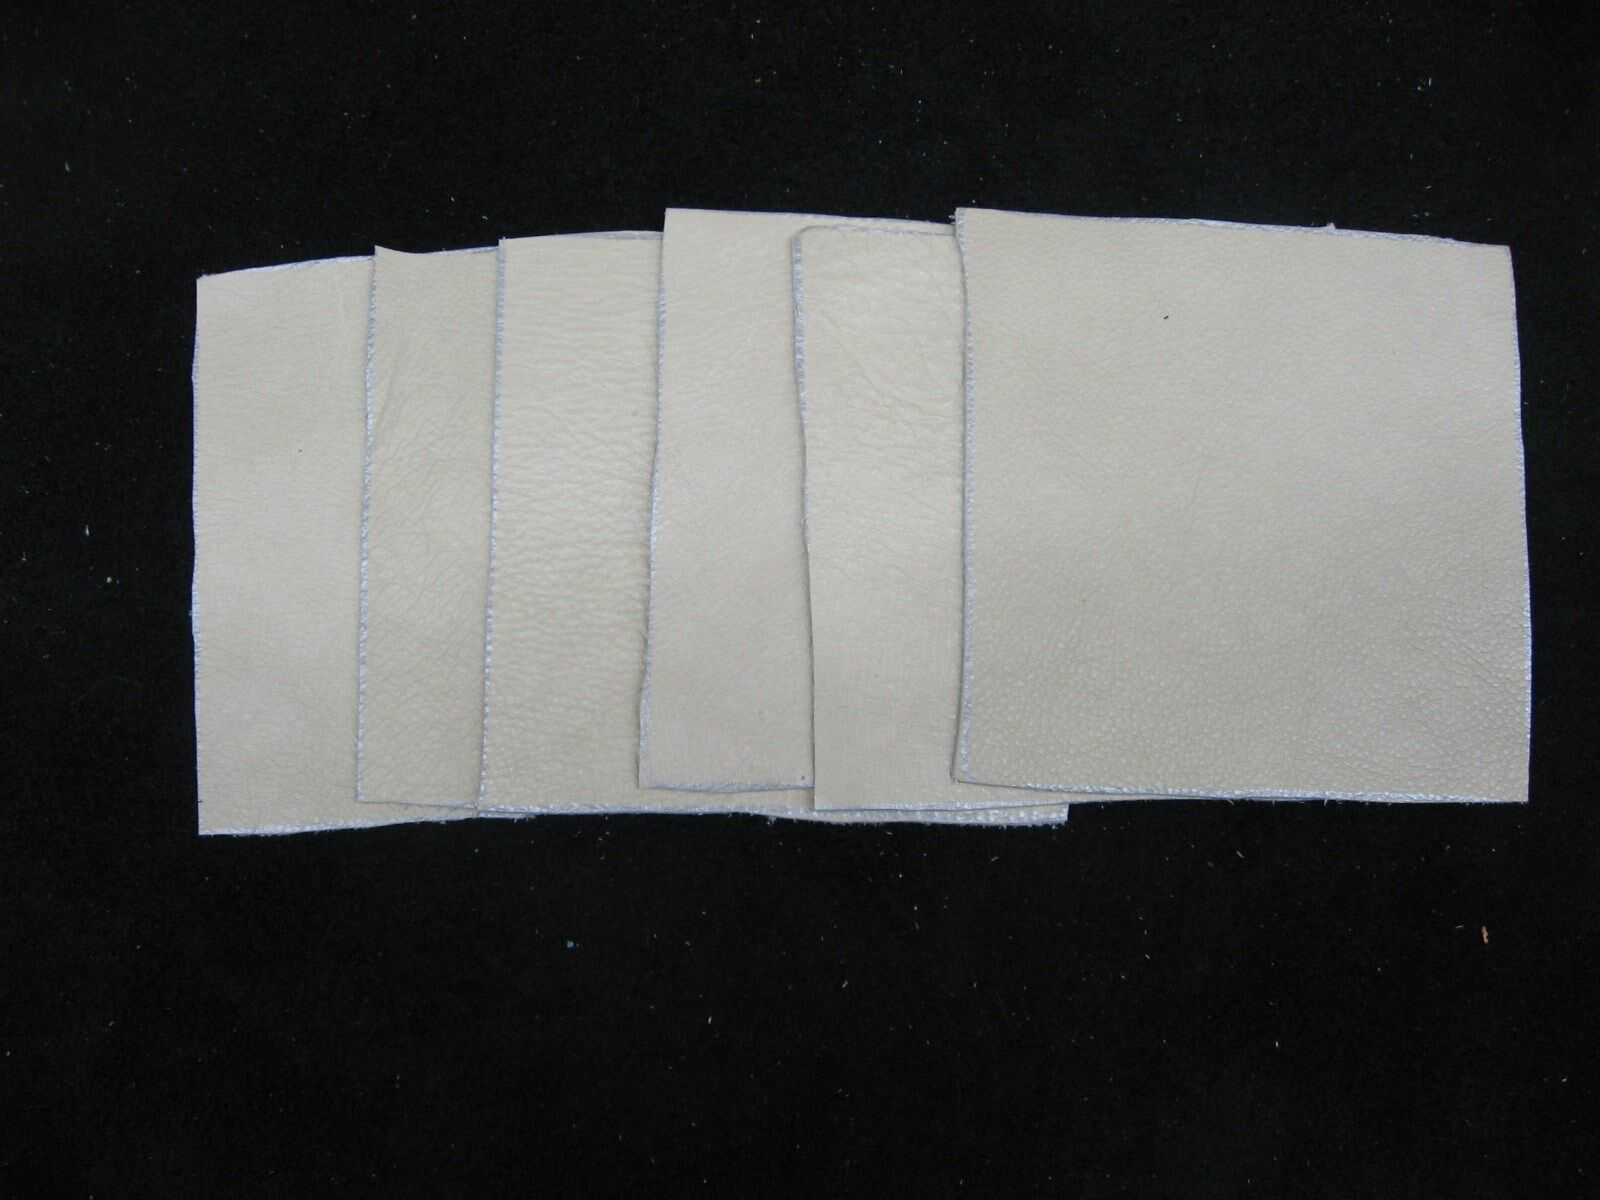 Scrap Leather Cowhide Creamy White Or A Buff Color 4x4 Inches 6 Pieces NEW - $3.49